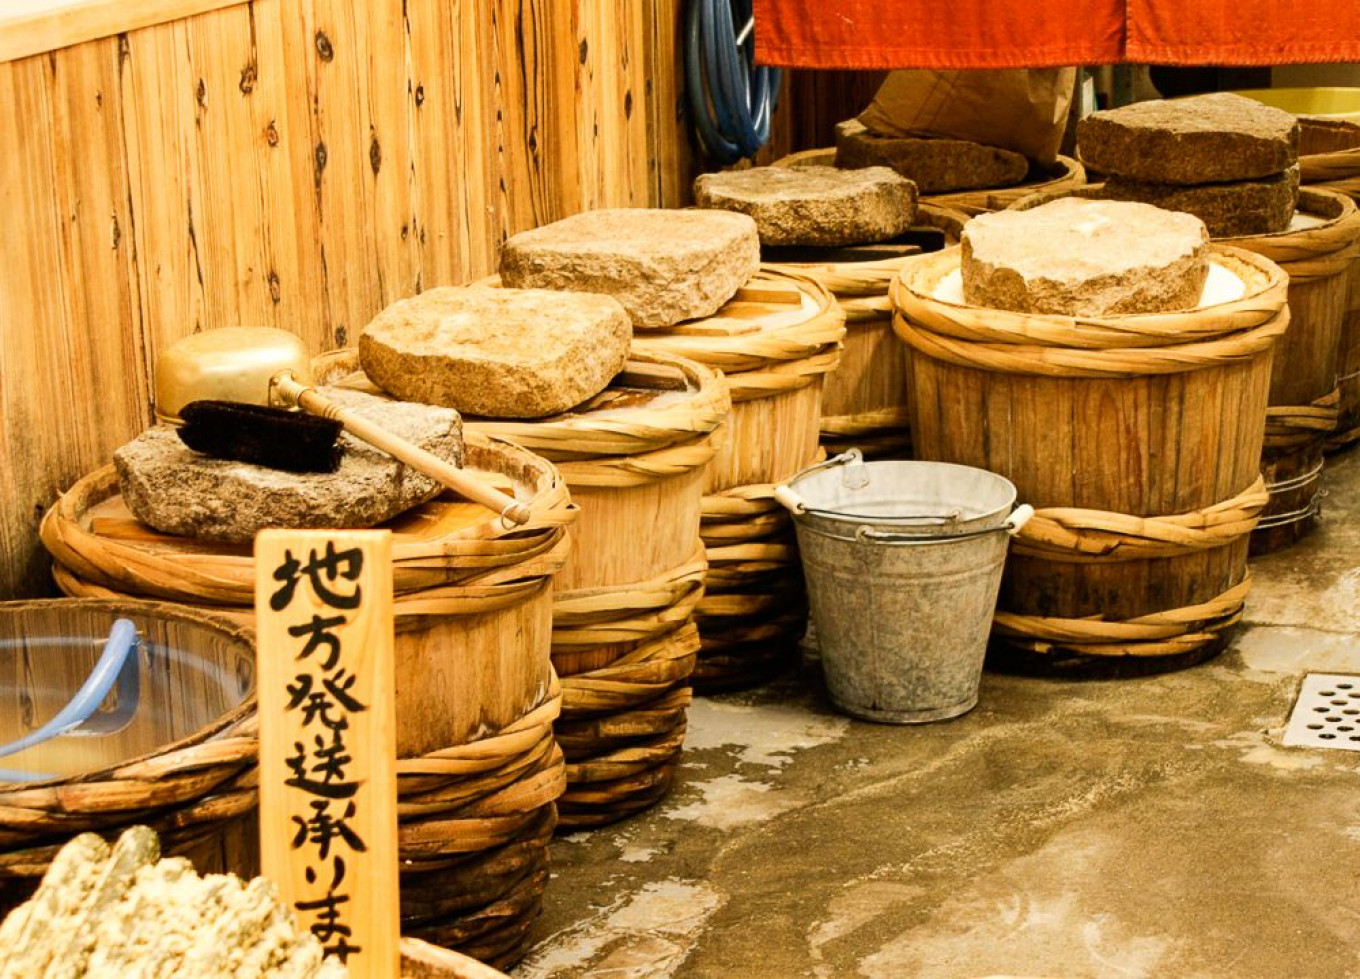 Fermenting vessels with weights at Kyoto Market.				 				Jennifer Eremeeva / MT